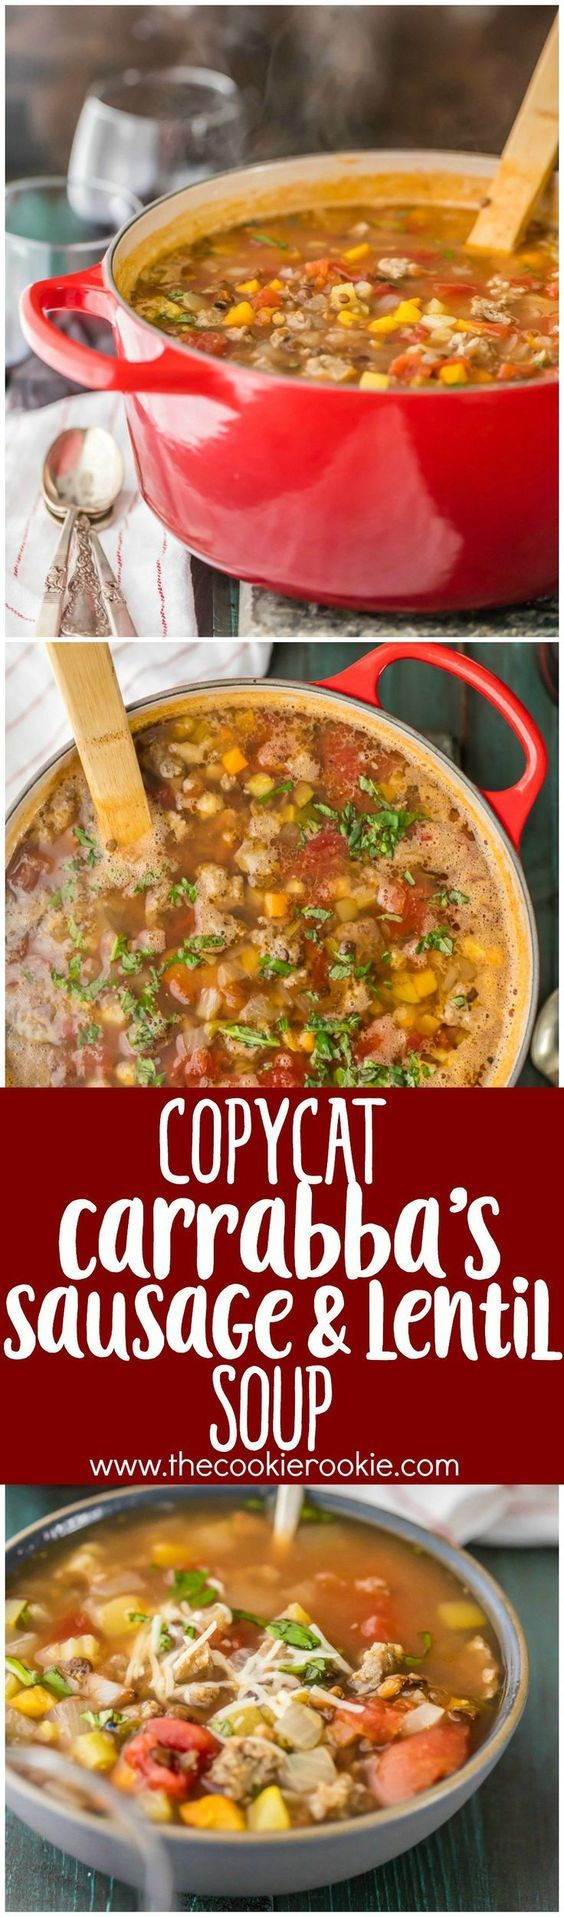 Copycat Carrabba's Sausage and Lentil Soup...your favorite restaurant comfort food made easy at home! This soup is such an EASY RECIPE and you can freeze it.